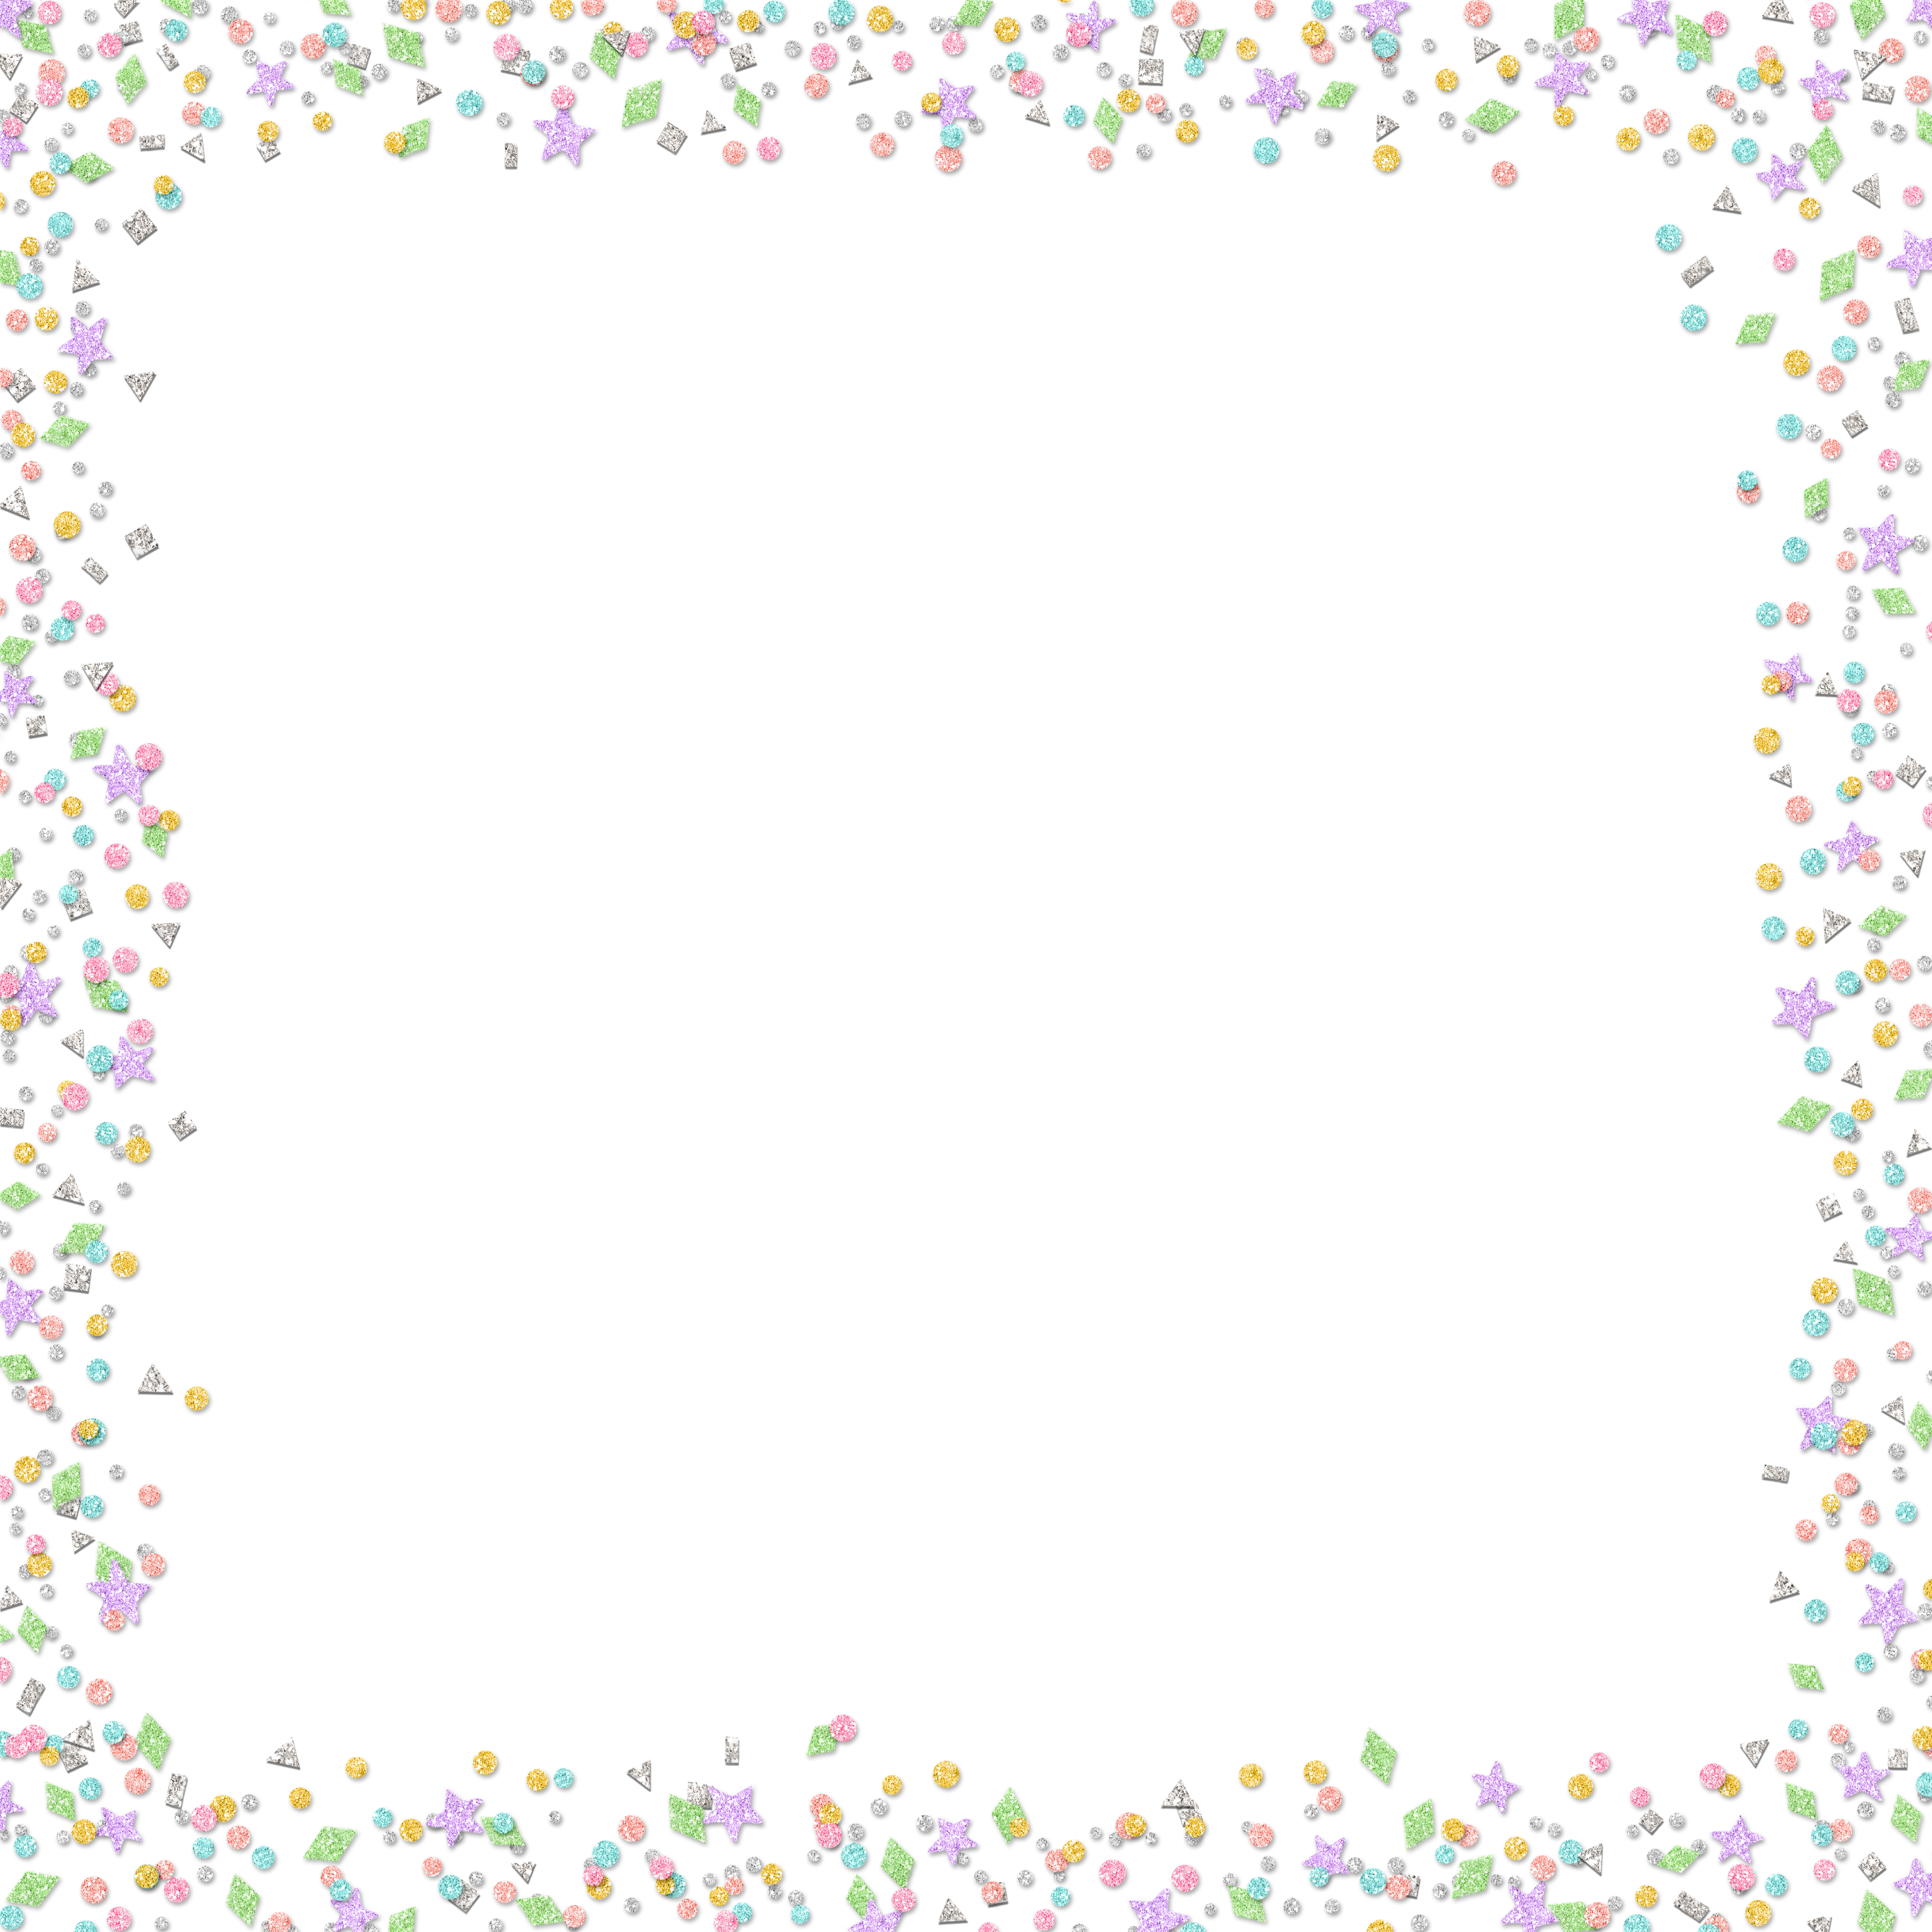 Glitter border png. Sparkle images in collection